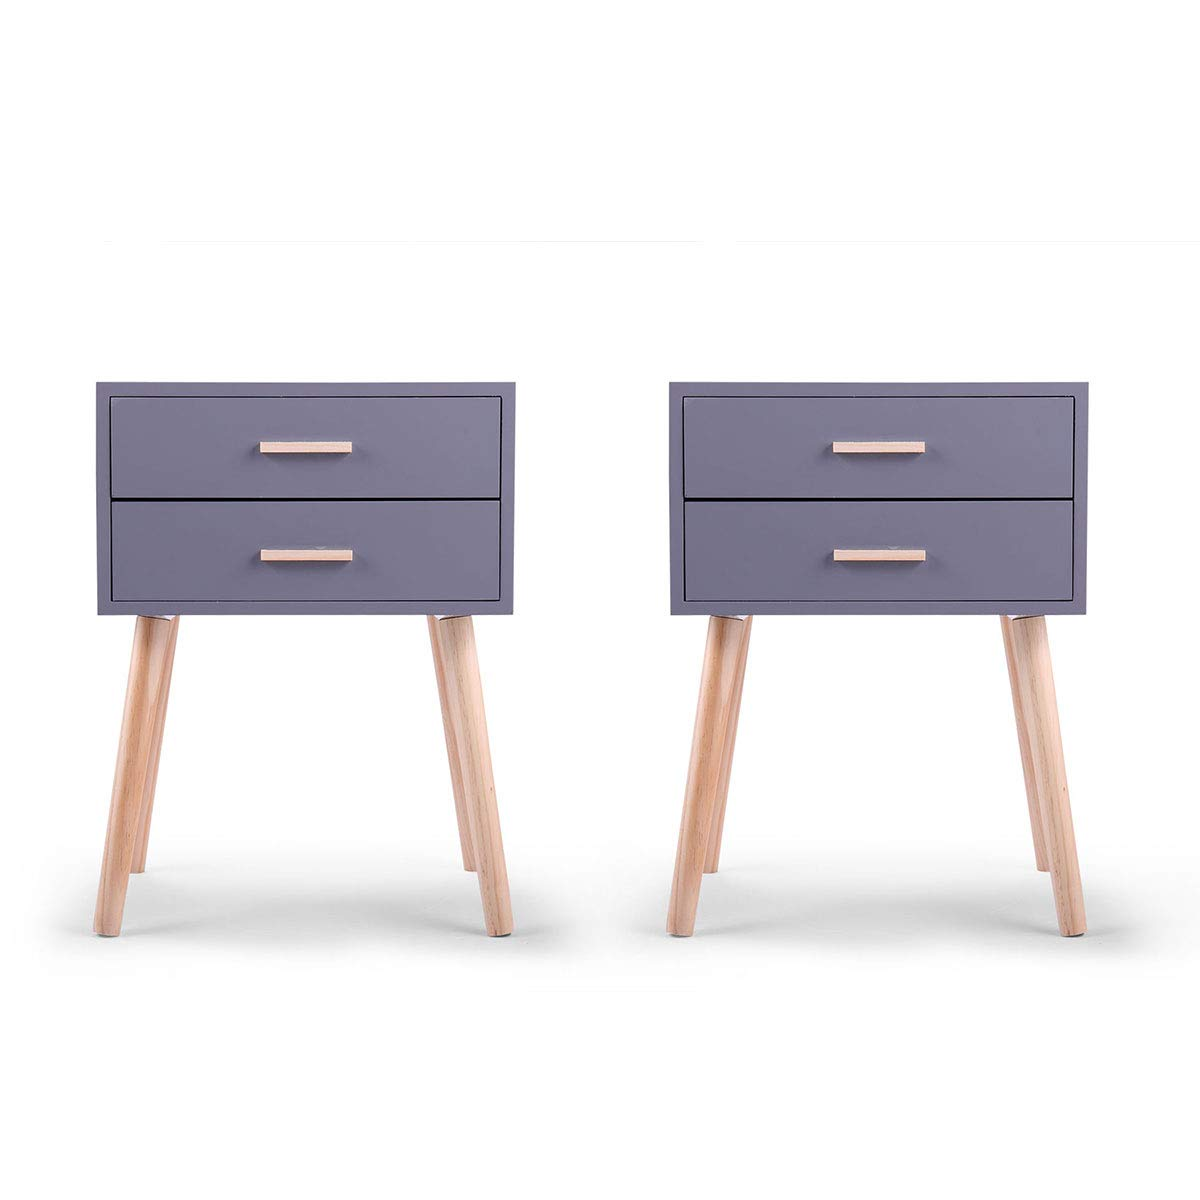 two nightstand side end table drawers pine wood bedroom tables legs living room furniture grey kitchen dining extra large dog crate rose gold target what color throw pillows for